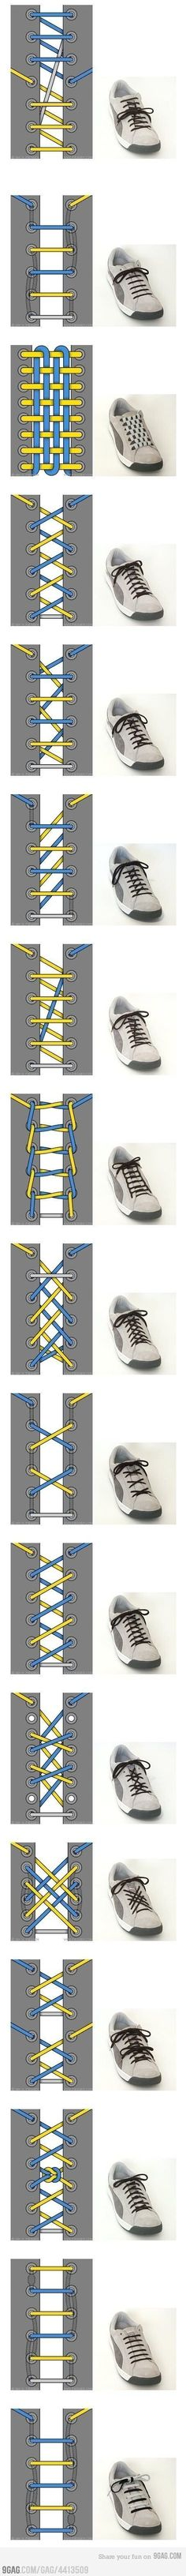 Cool Ways To Tie Your Shoe Laces ~ shoe lace patterns ~ Will have to remember this when the kids finally get shoes with laces. Your Shoes, How To Tie Shoes, Good To Know, Paracord, Life Hacks, Mom Hacks, Mens Fashion, Boyish Fashion, Fashion 2020